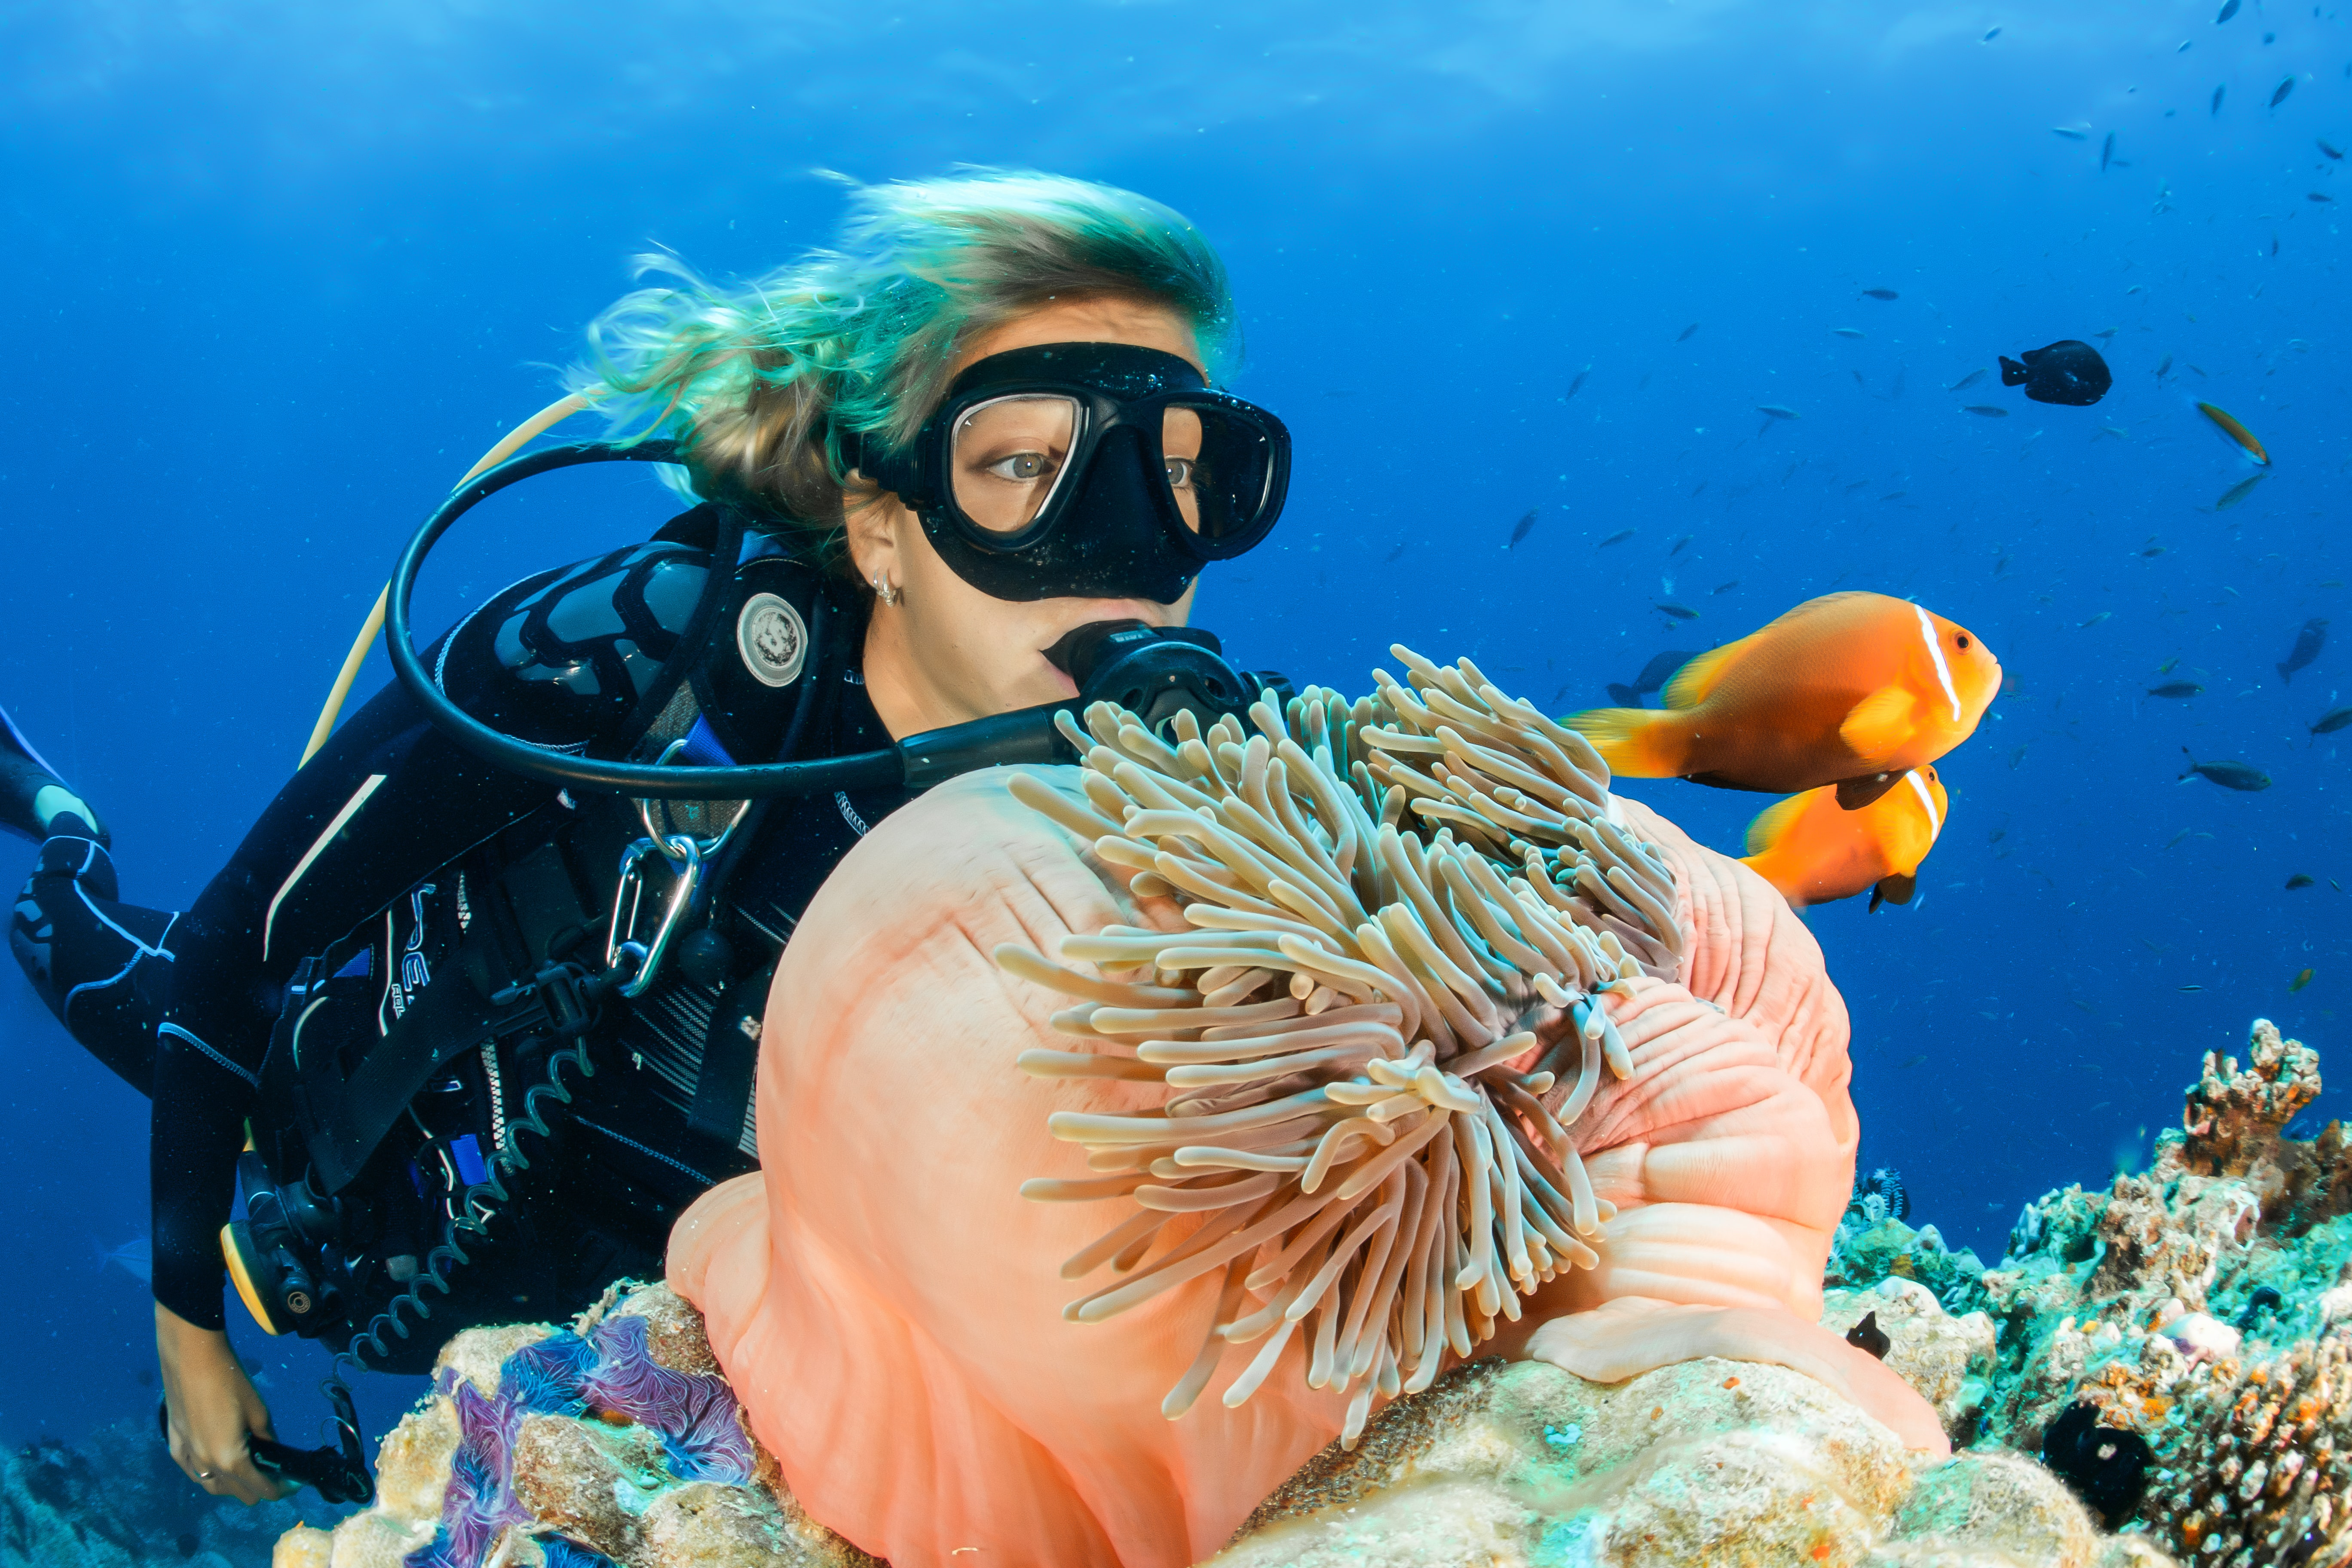 A girl exploring coral reefs in the Maldives